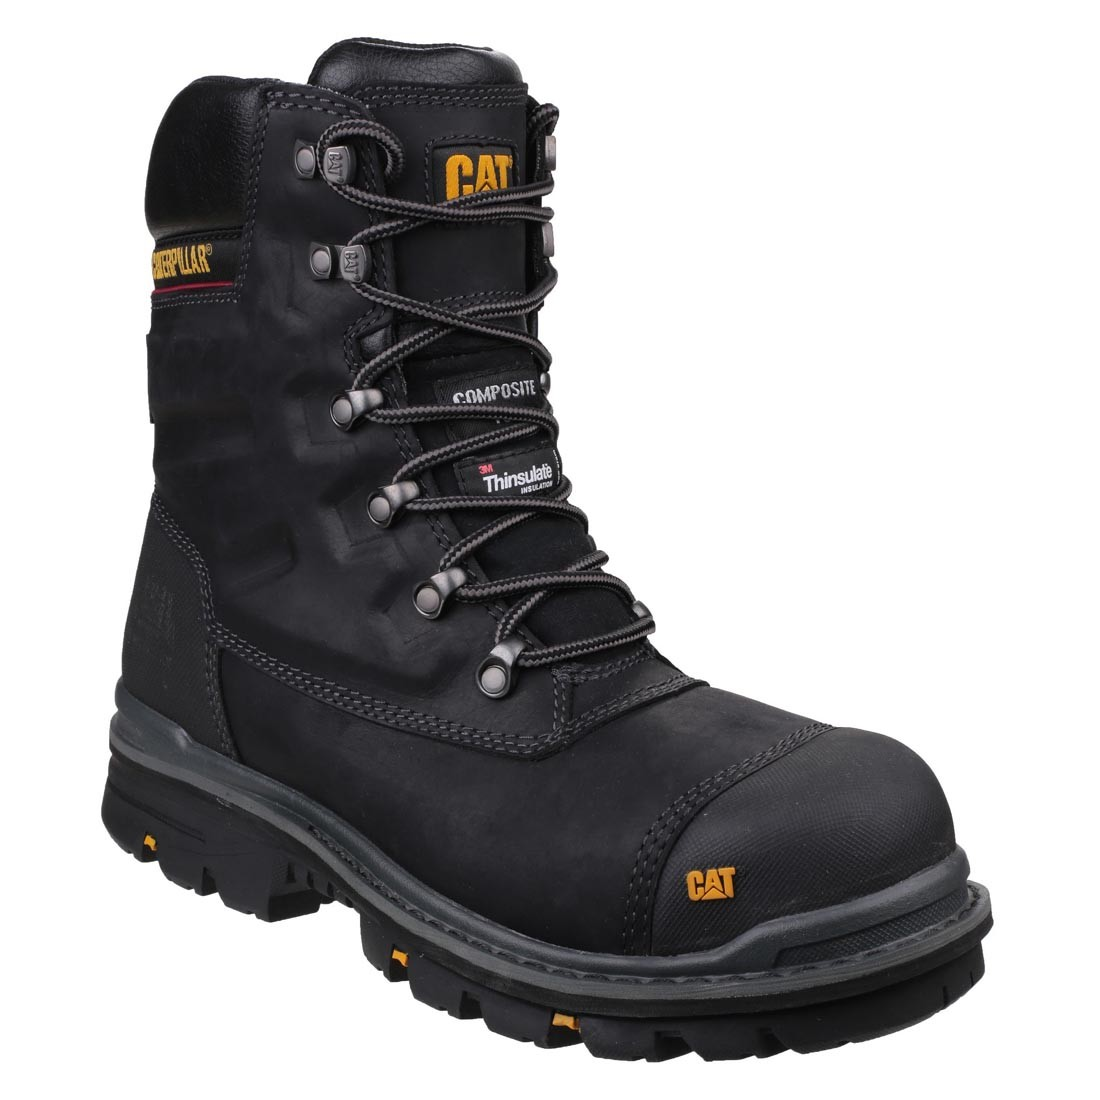 4e59a0fd917 CAT Safety Boots and Shoes Caterpillar Footwear from UK Safety Footwear